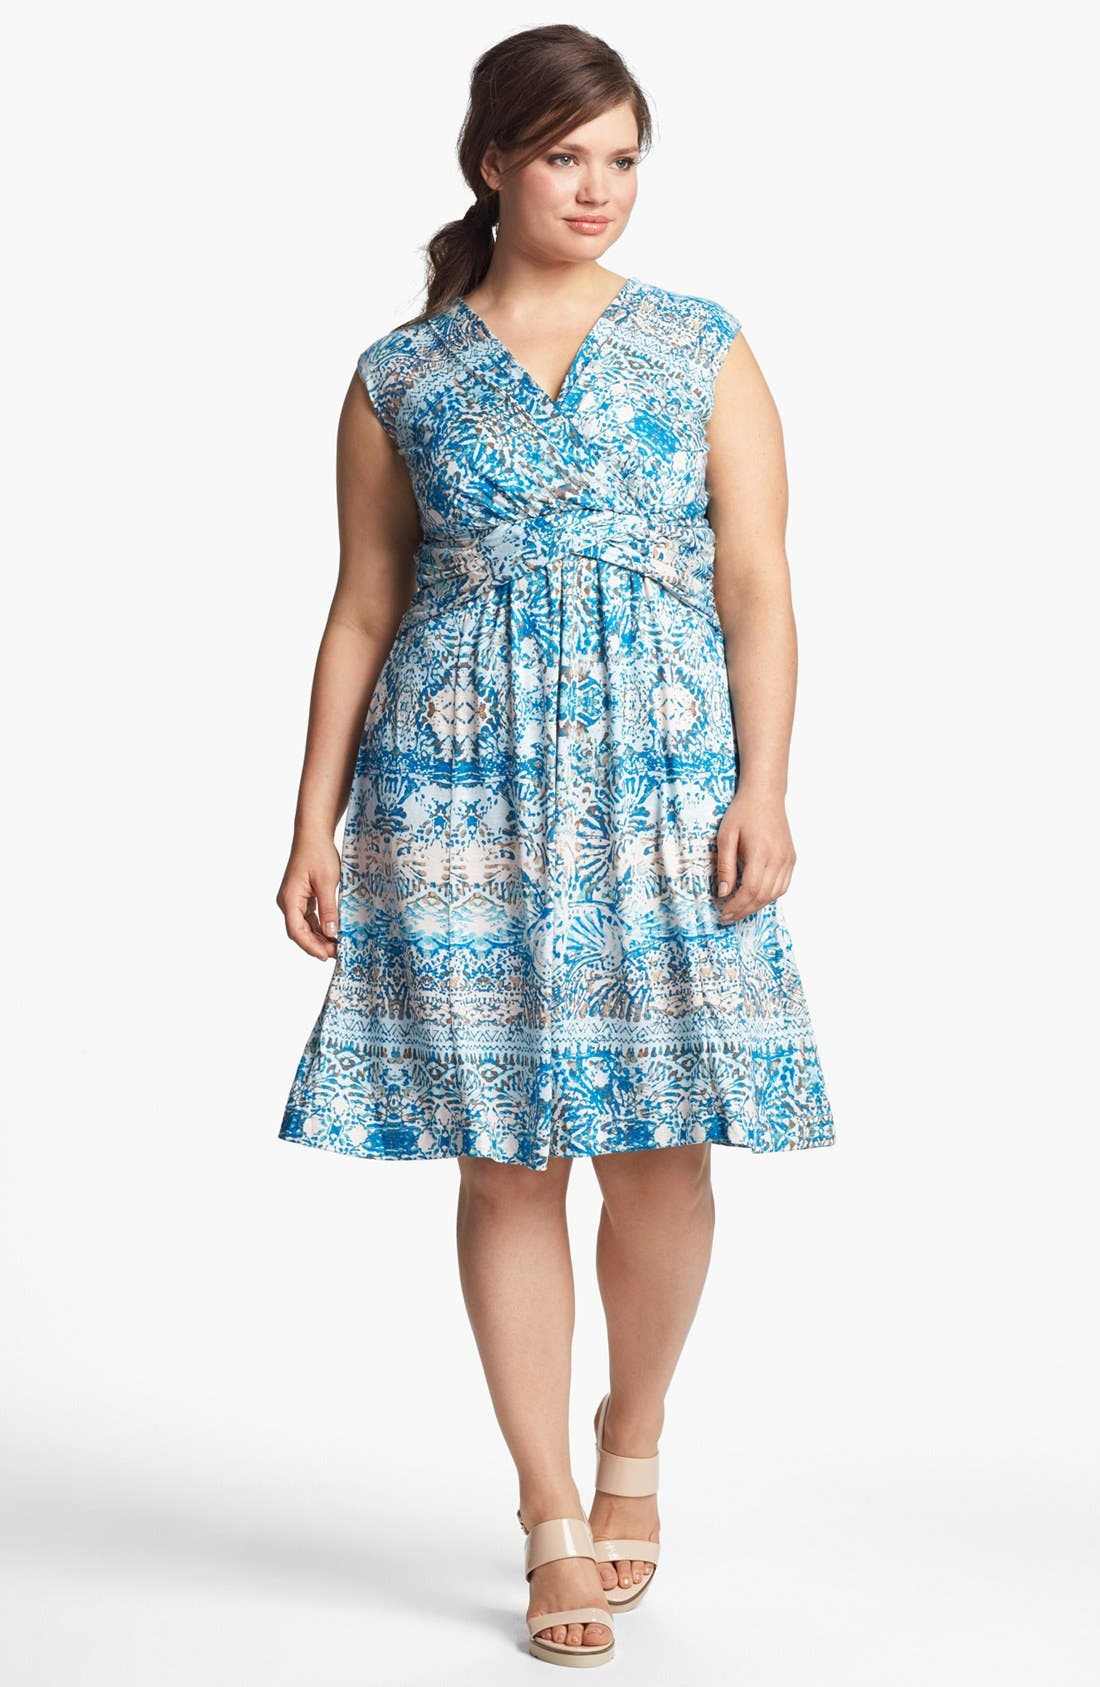 Main Image - Nic + Zoe 'Seven Seas' Print Fit & Flare Dress (Plus Size)